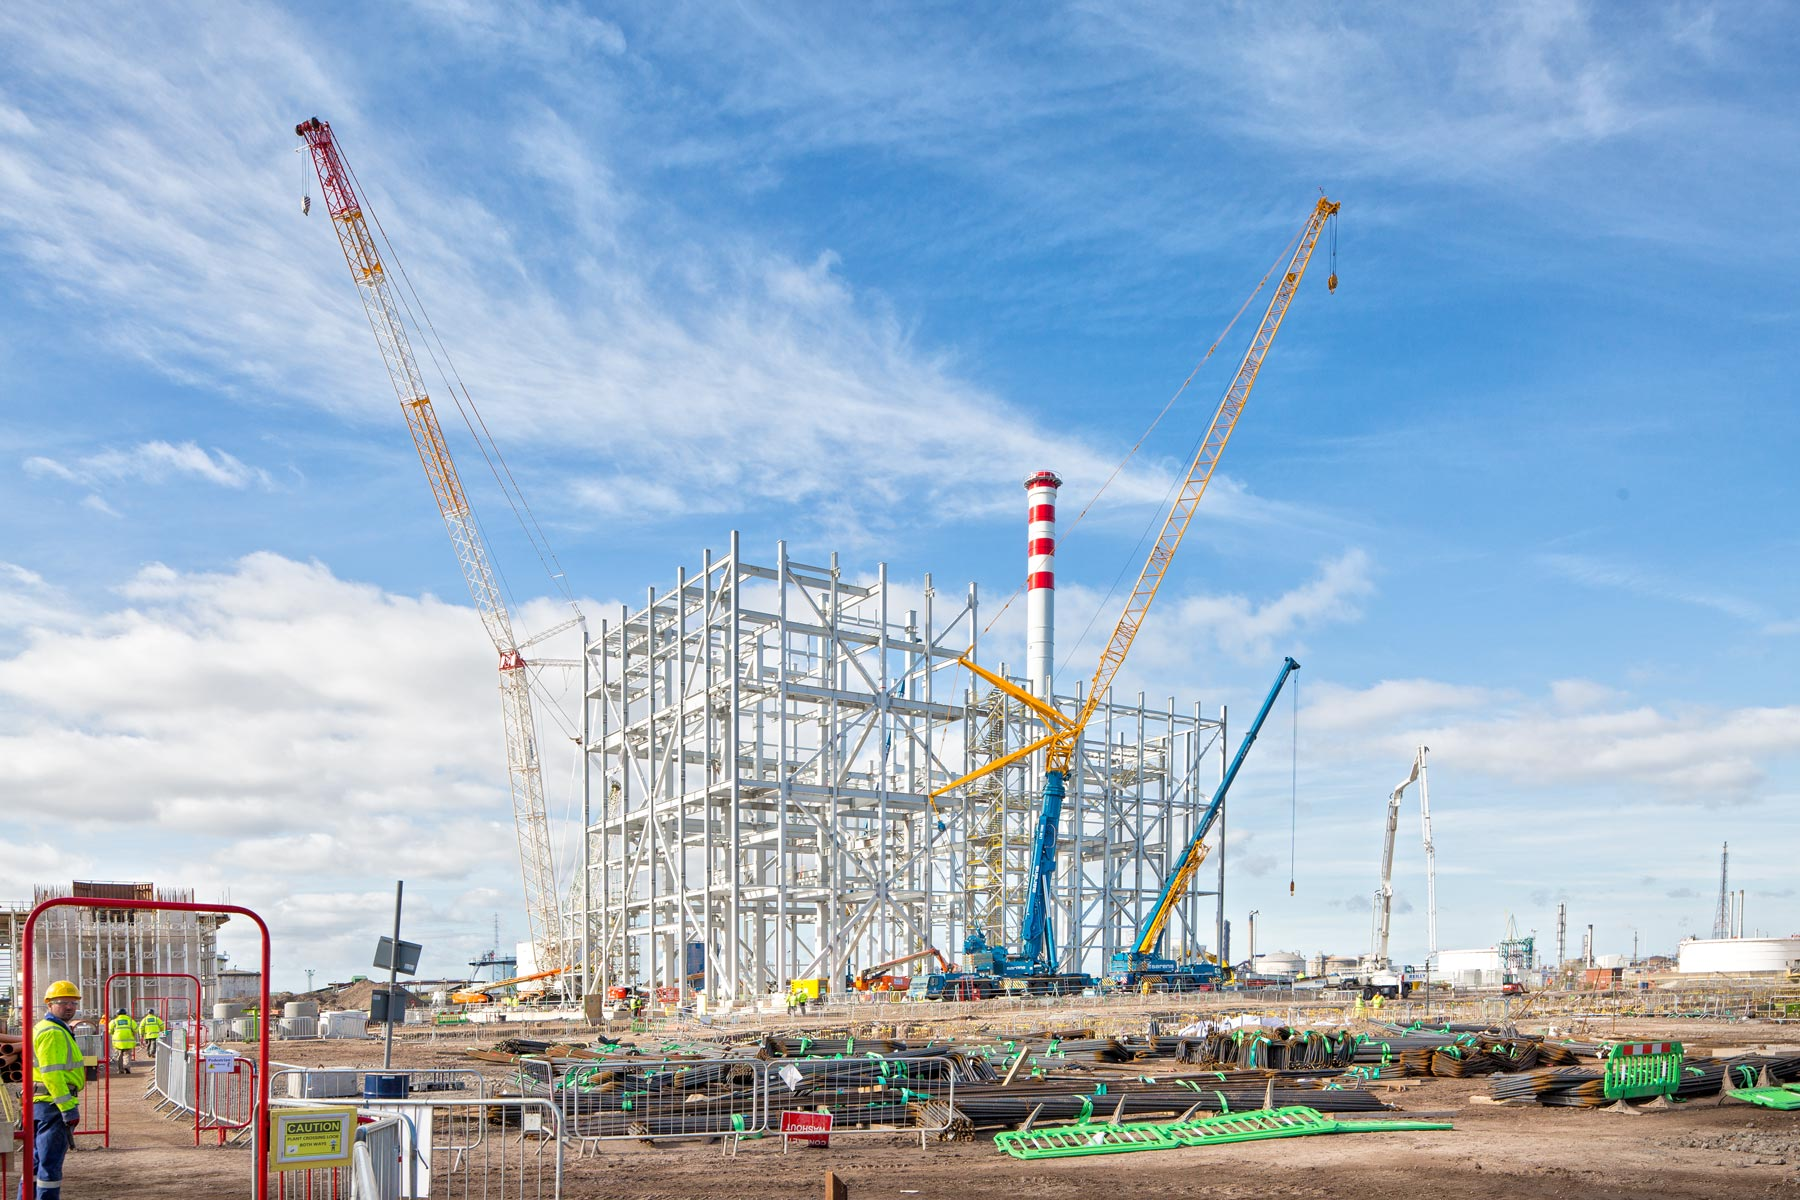 Photographic documentation of the construction of the worlds largest biomass plant, Teeside